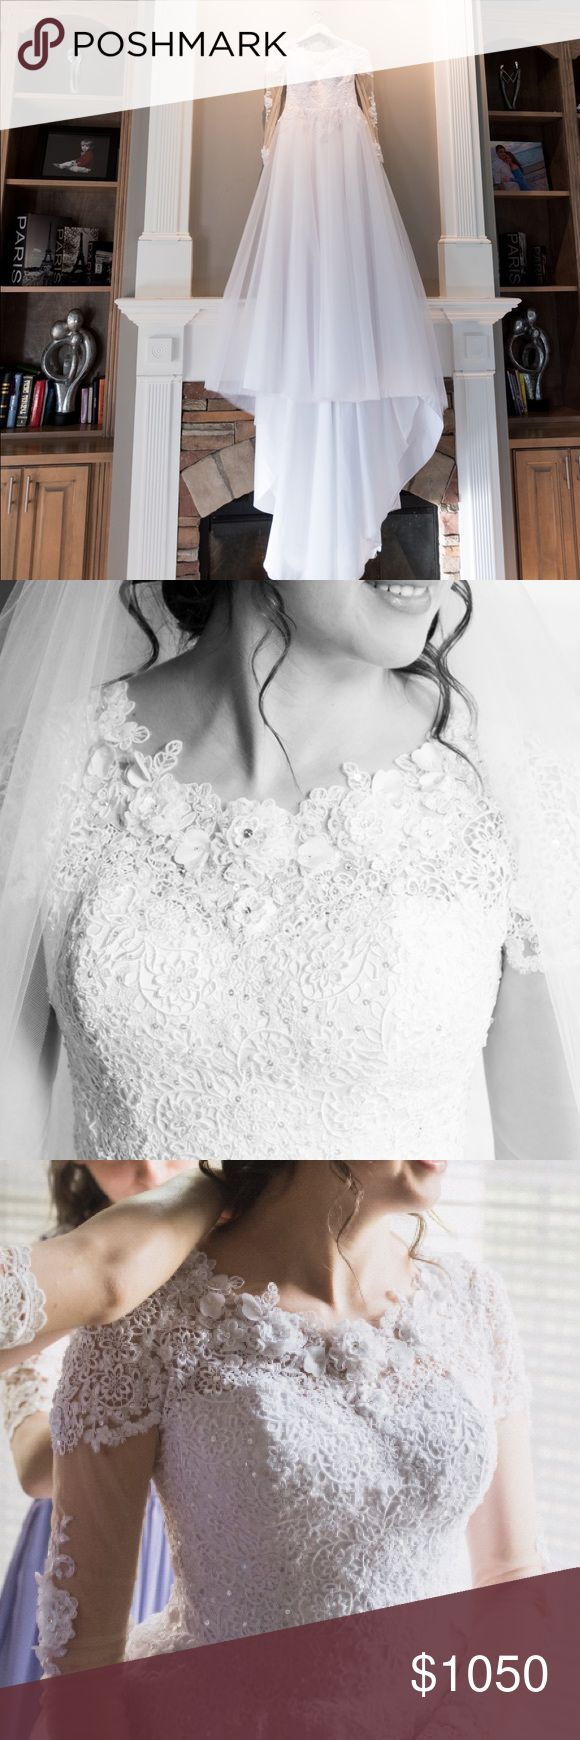 Sell my wedding dress made in Europe! Sell wedding dress made in Europe!  Size: s-m,  Color: white, only dressed once!  The top of the lace is embroidered with beads-handmade. made in Europe Dresses Wedding